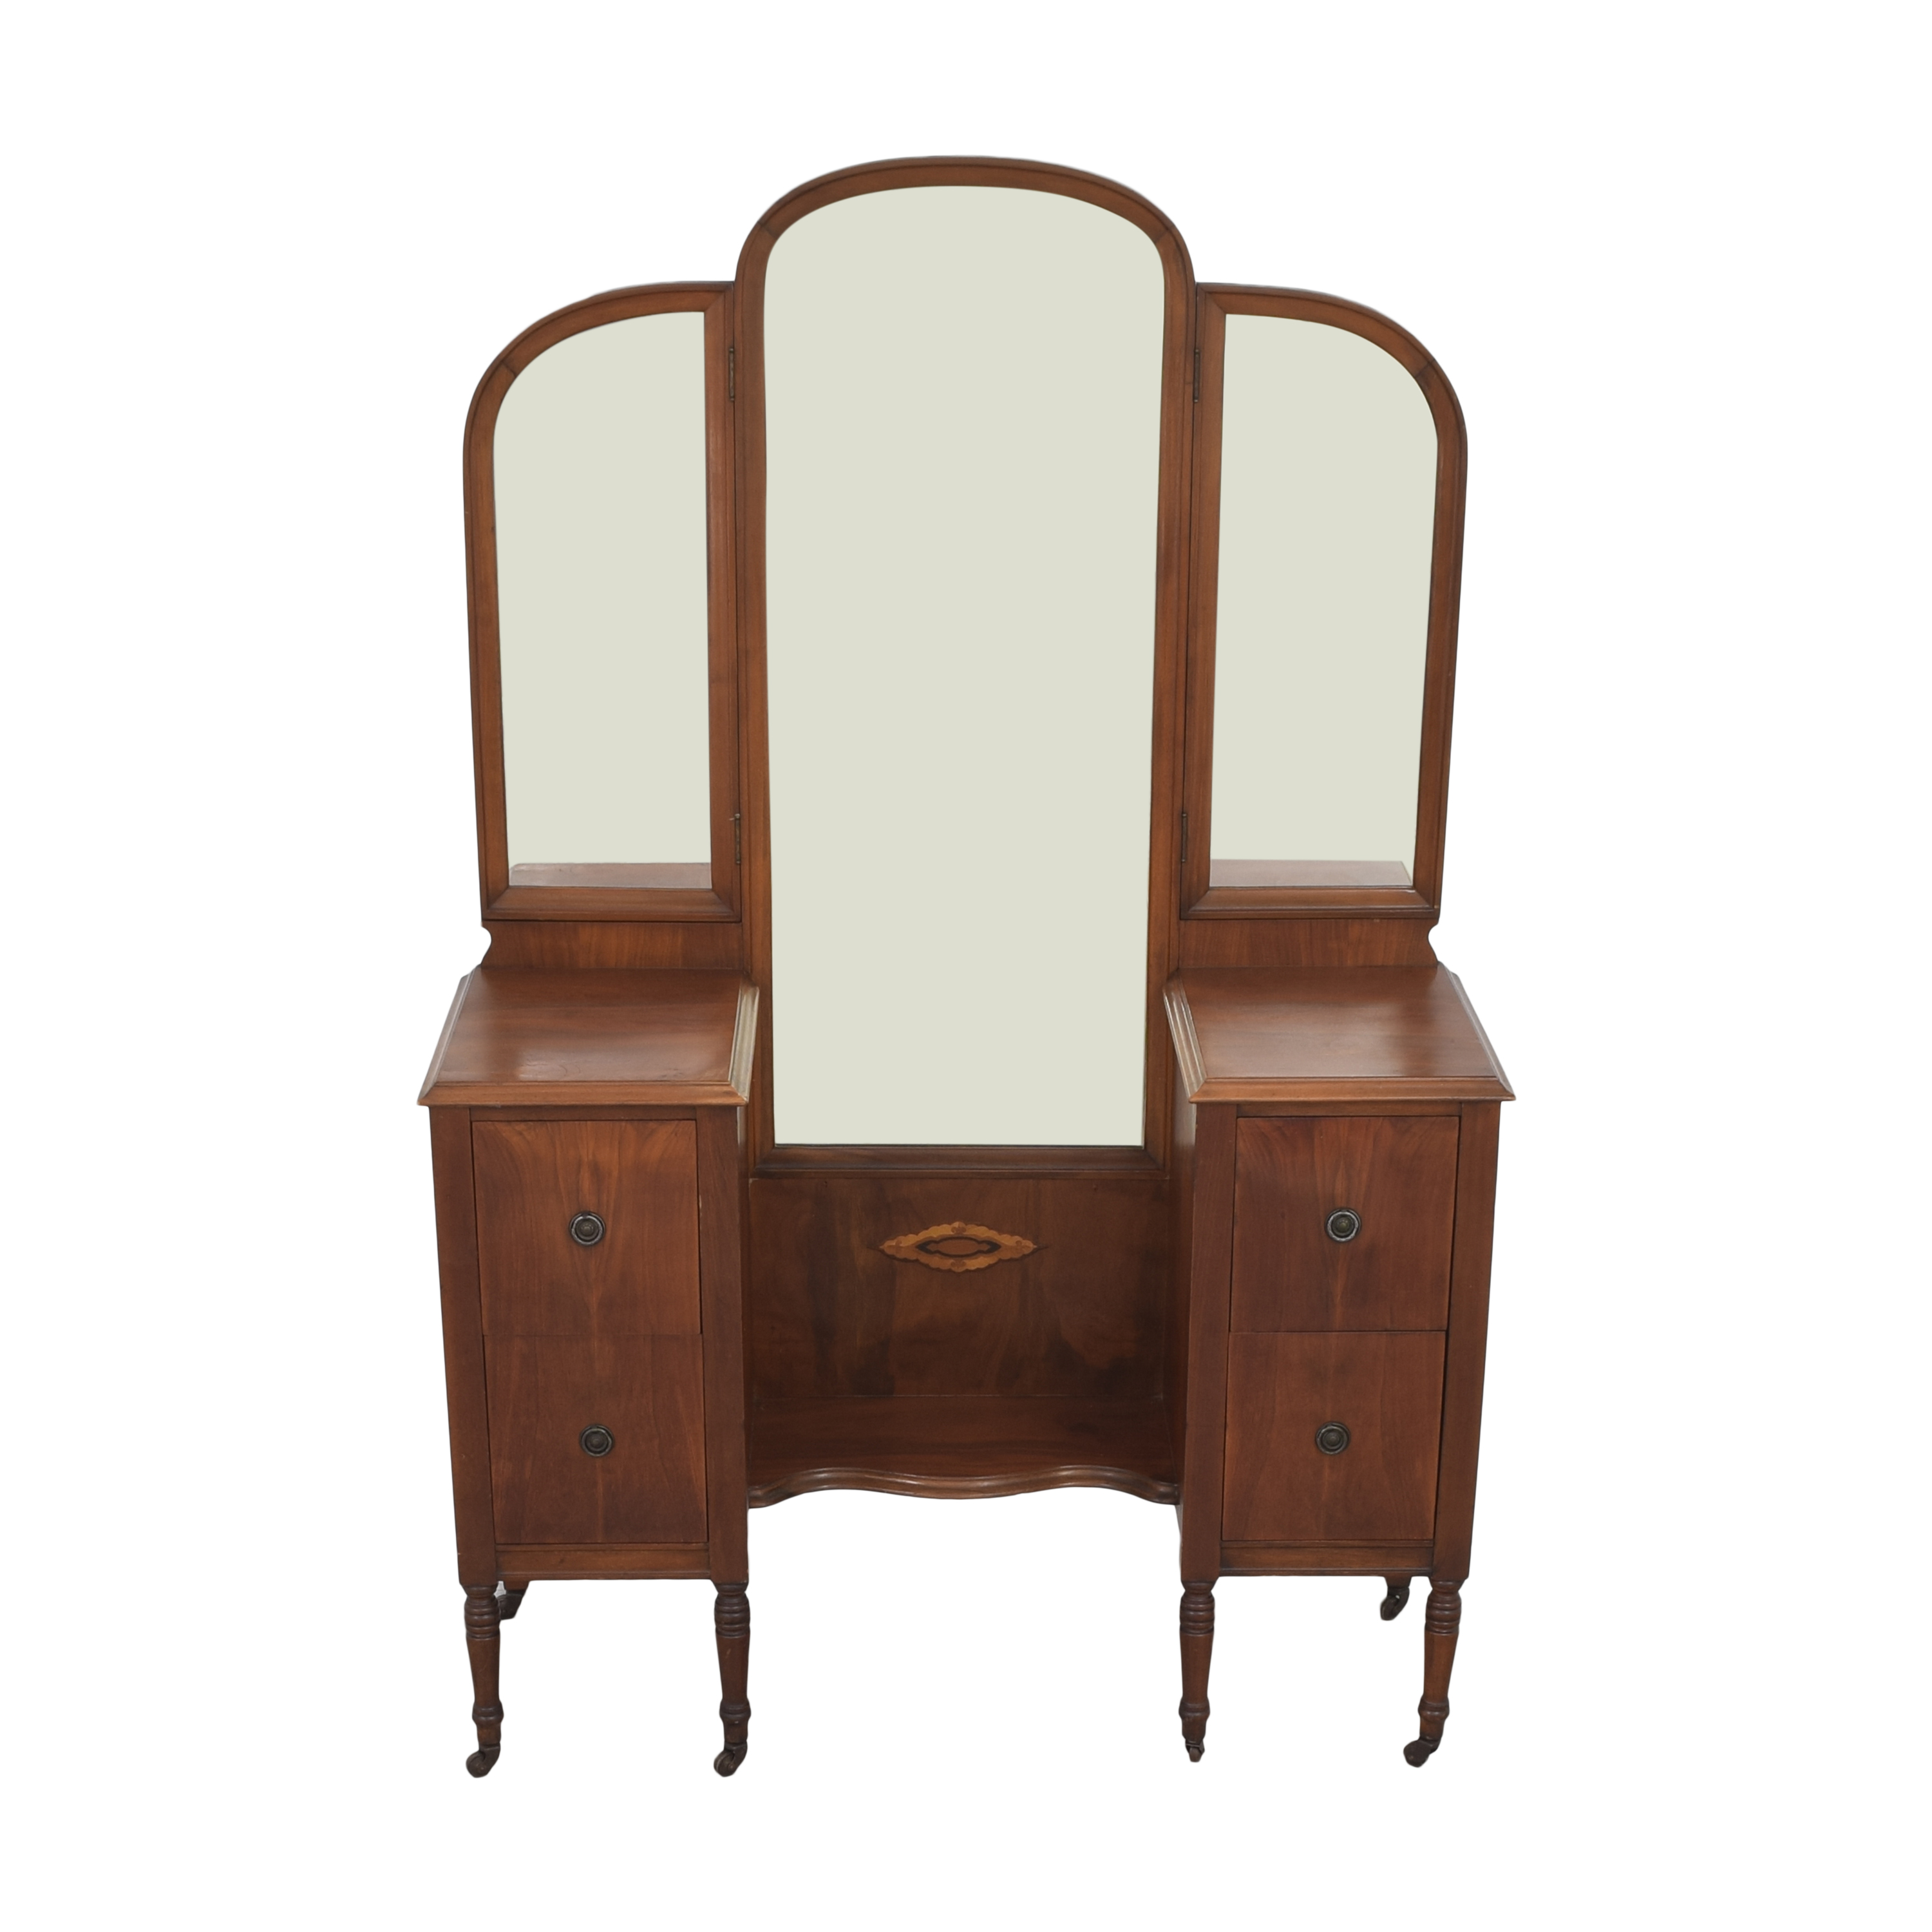 buy Star Furniture Vintage Vanity with Trifold Mirror Star Furniture Dressers